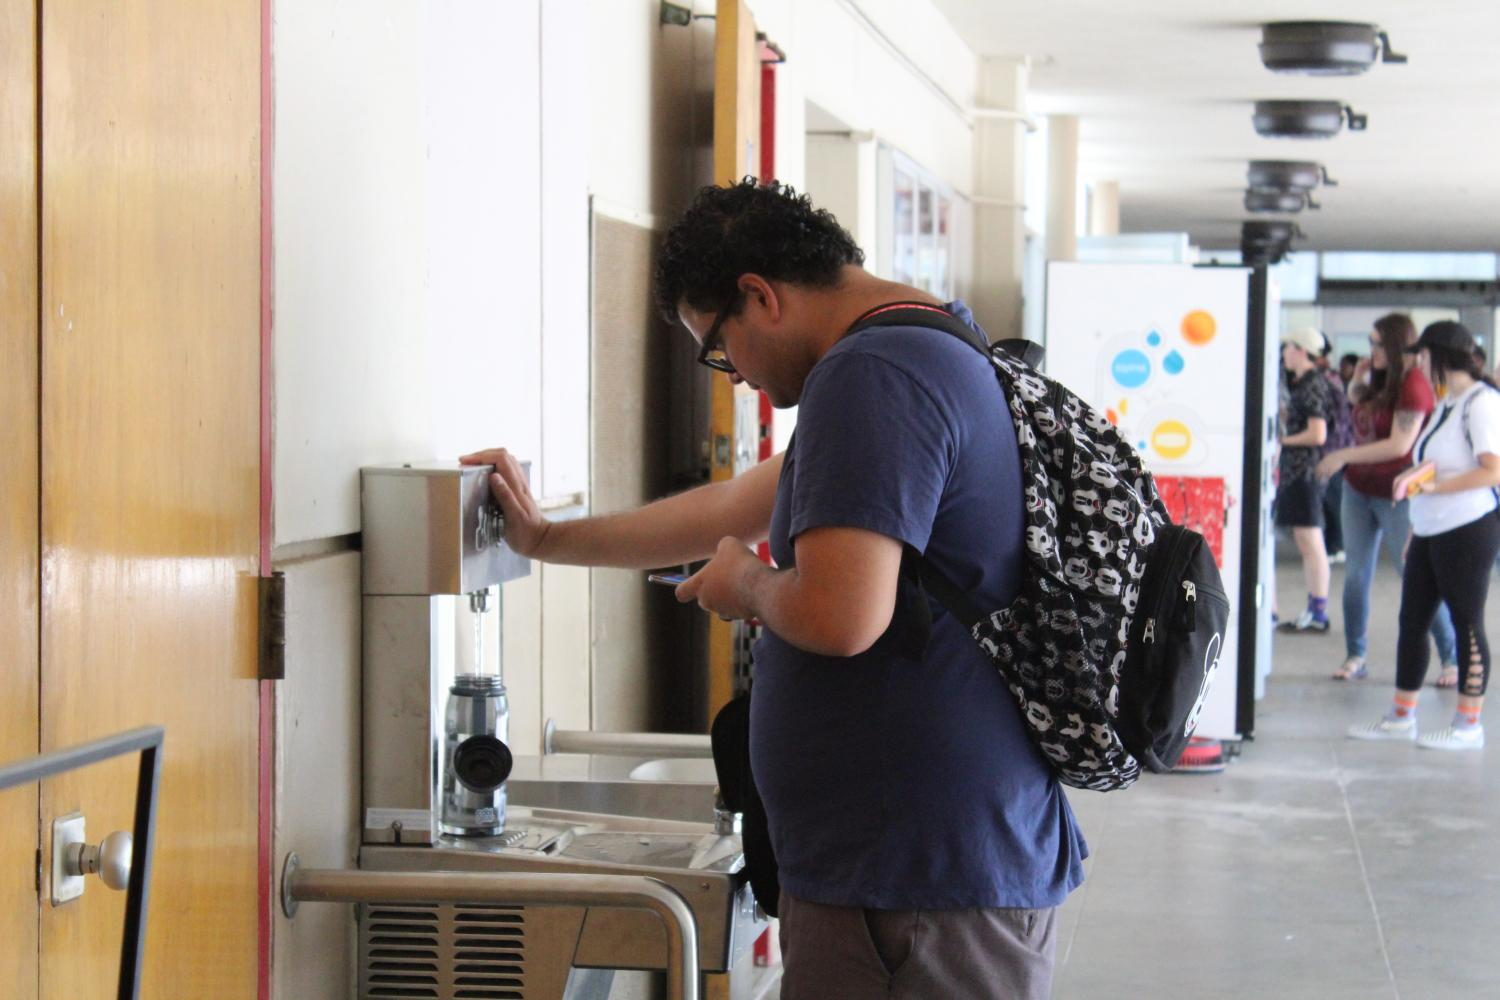 A student is shown standing while filling up his water bottle with the new fountain.